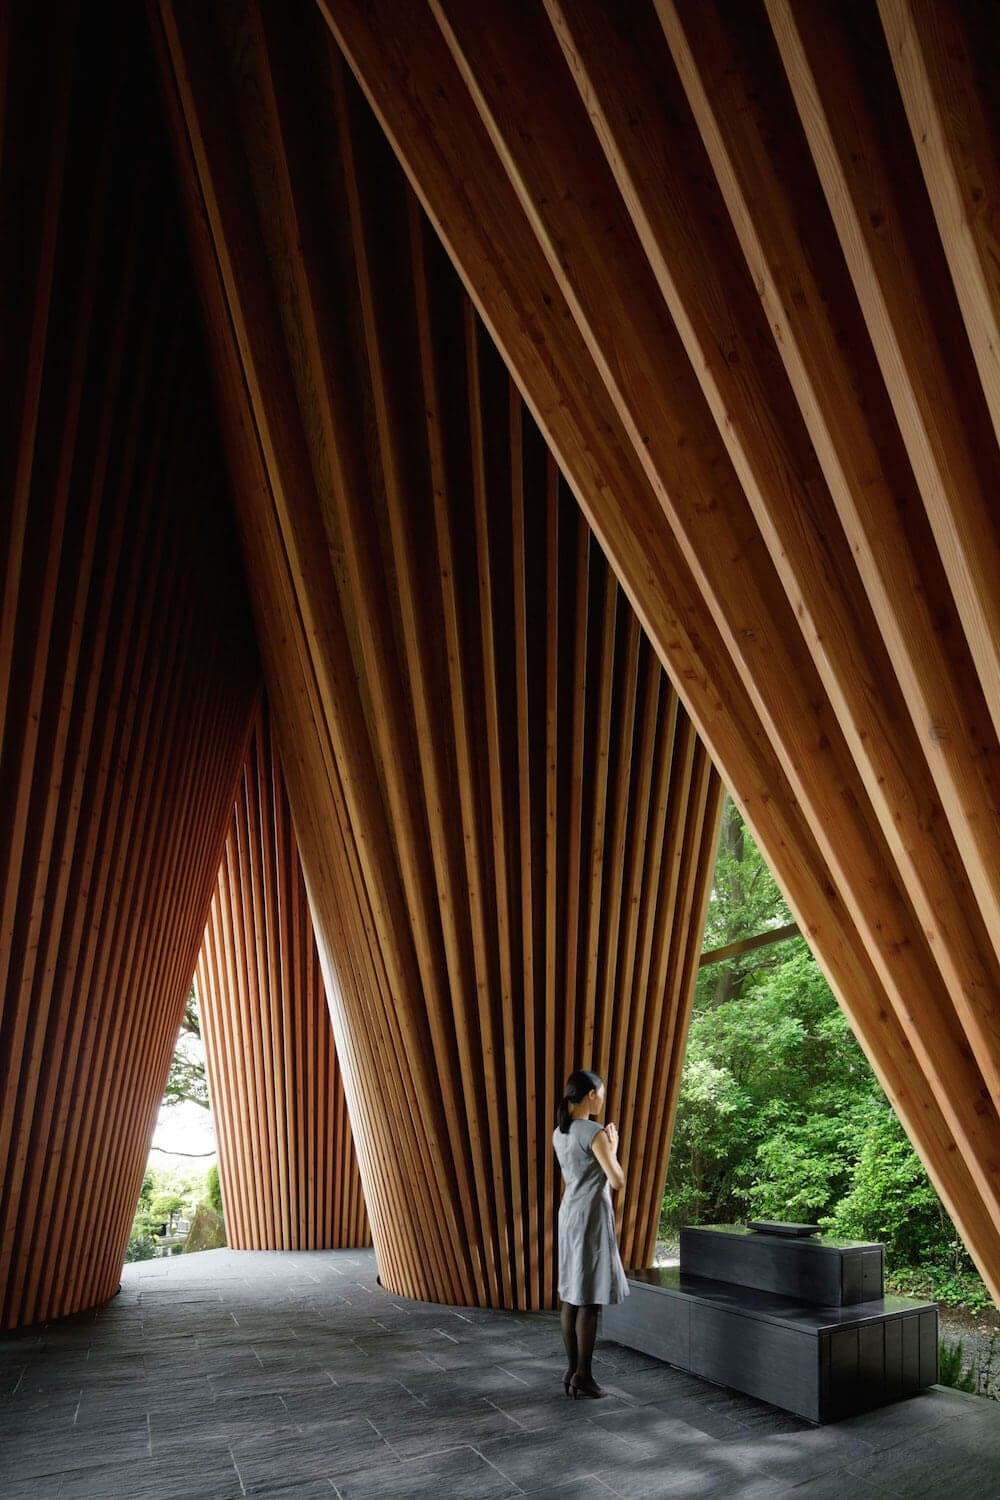 solemn sayama forest chapel 5 - This Solemn Forest Chapel in Japan Mimics Two Hands Clasped in Prayer